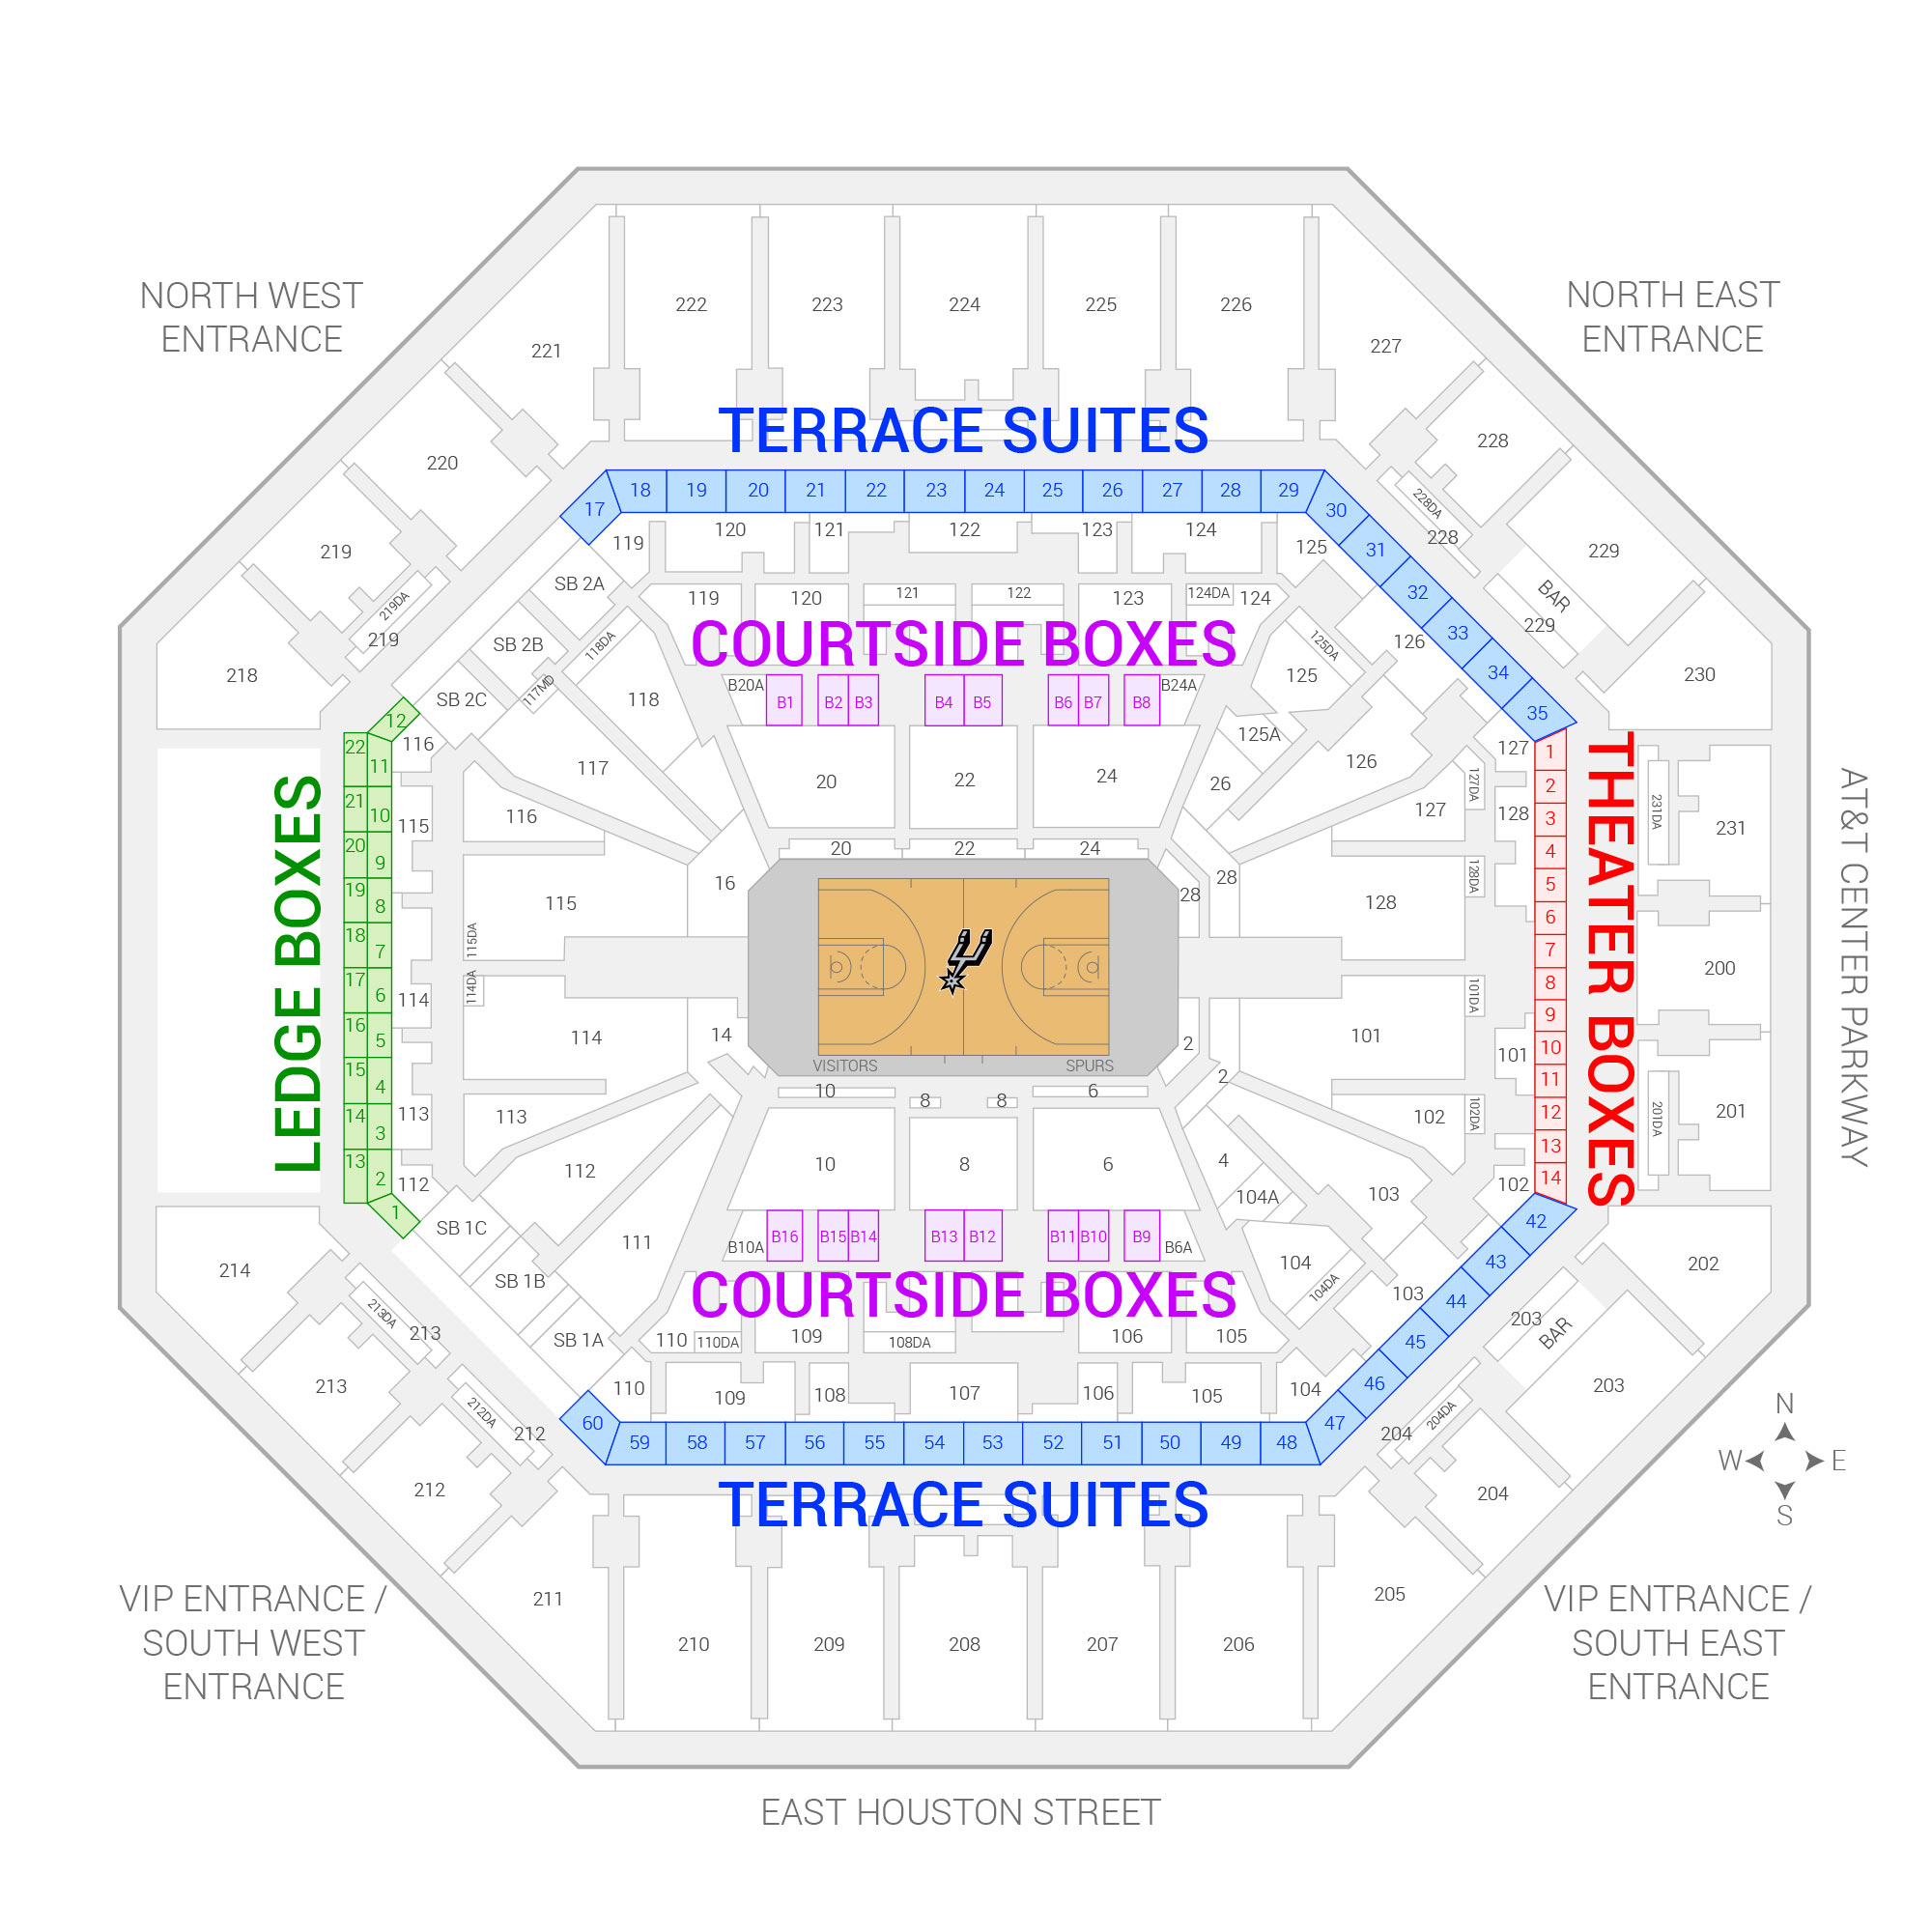 AT&T Center / San Antonio Spurs Suite Map and Seating Chart